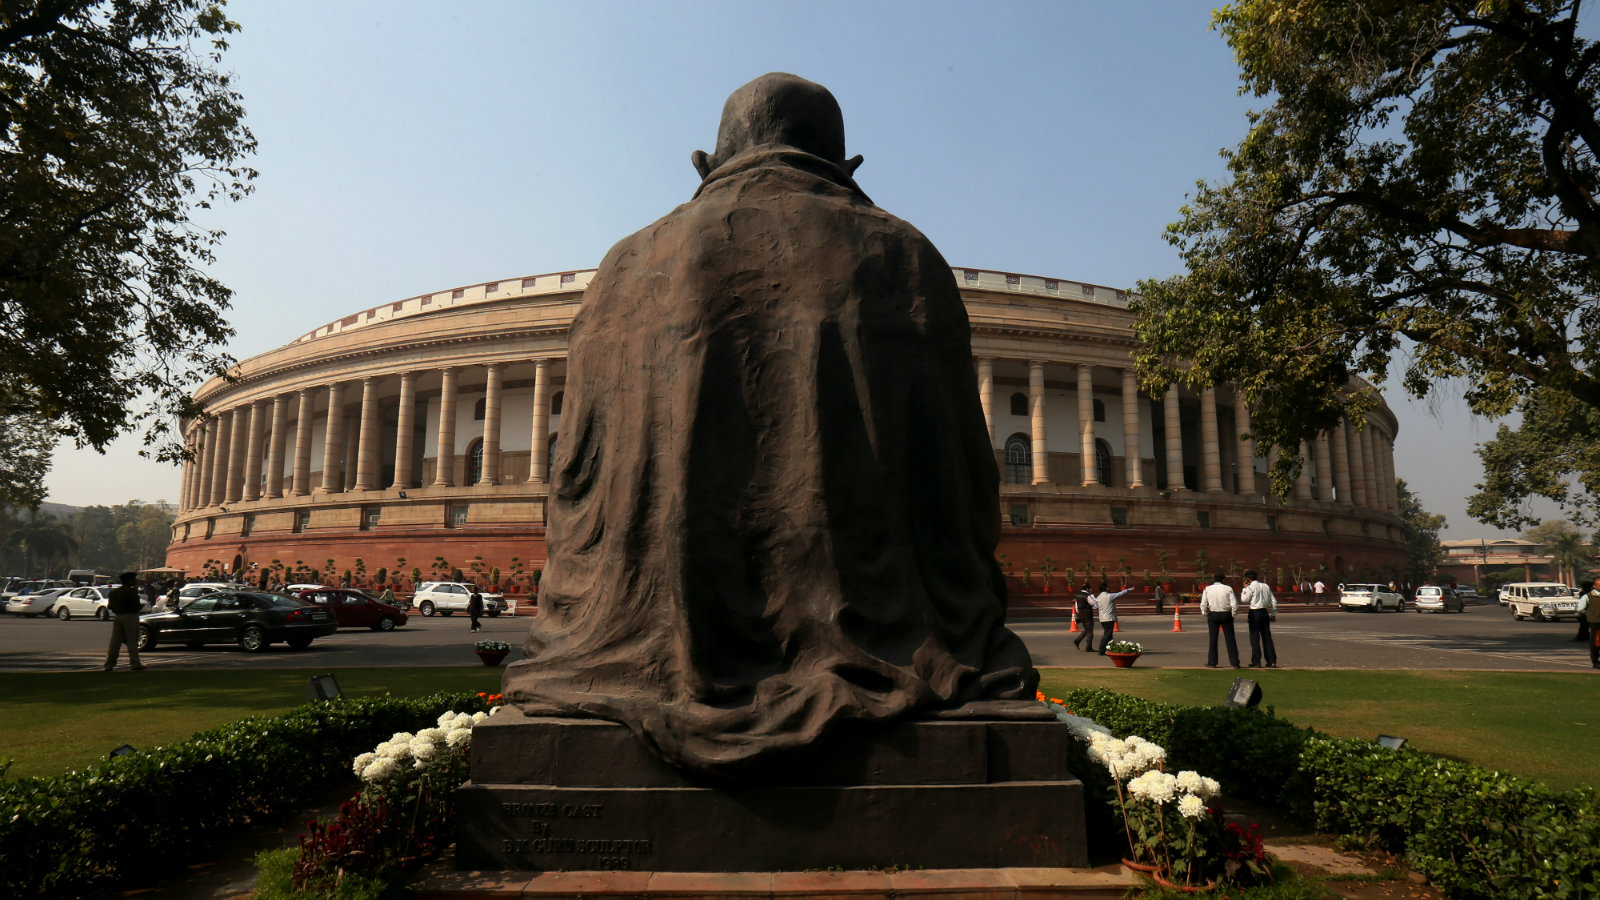 A statue of Mahatma Gandhi overlooks the Indian parliament. Everything that he has stood for till now may be under siege now.